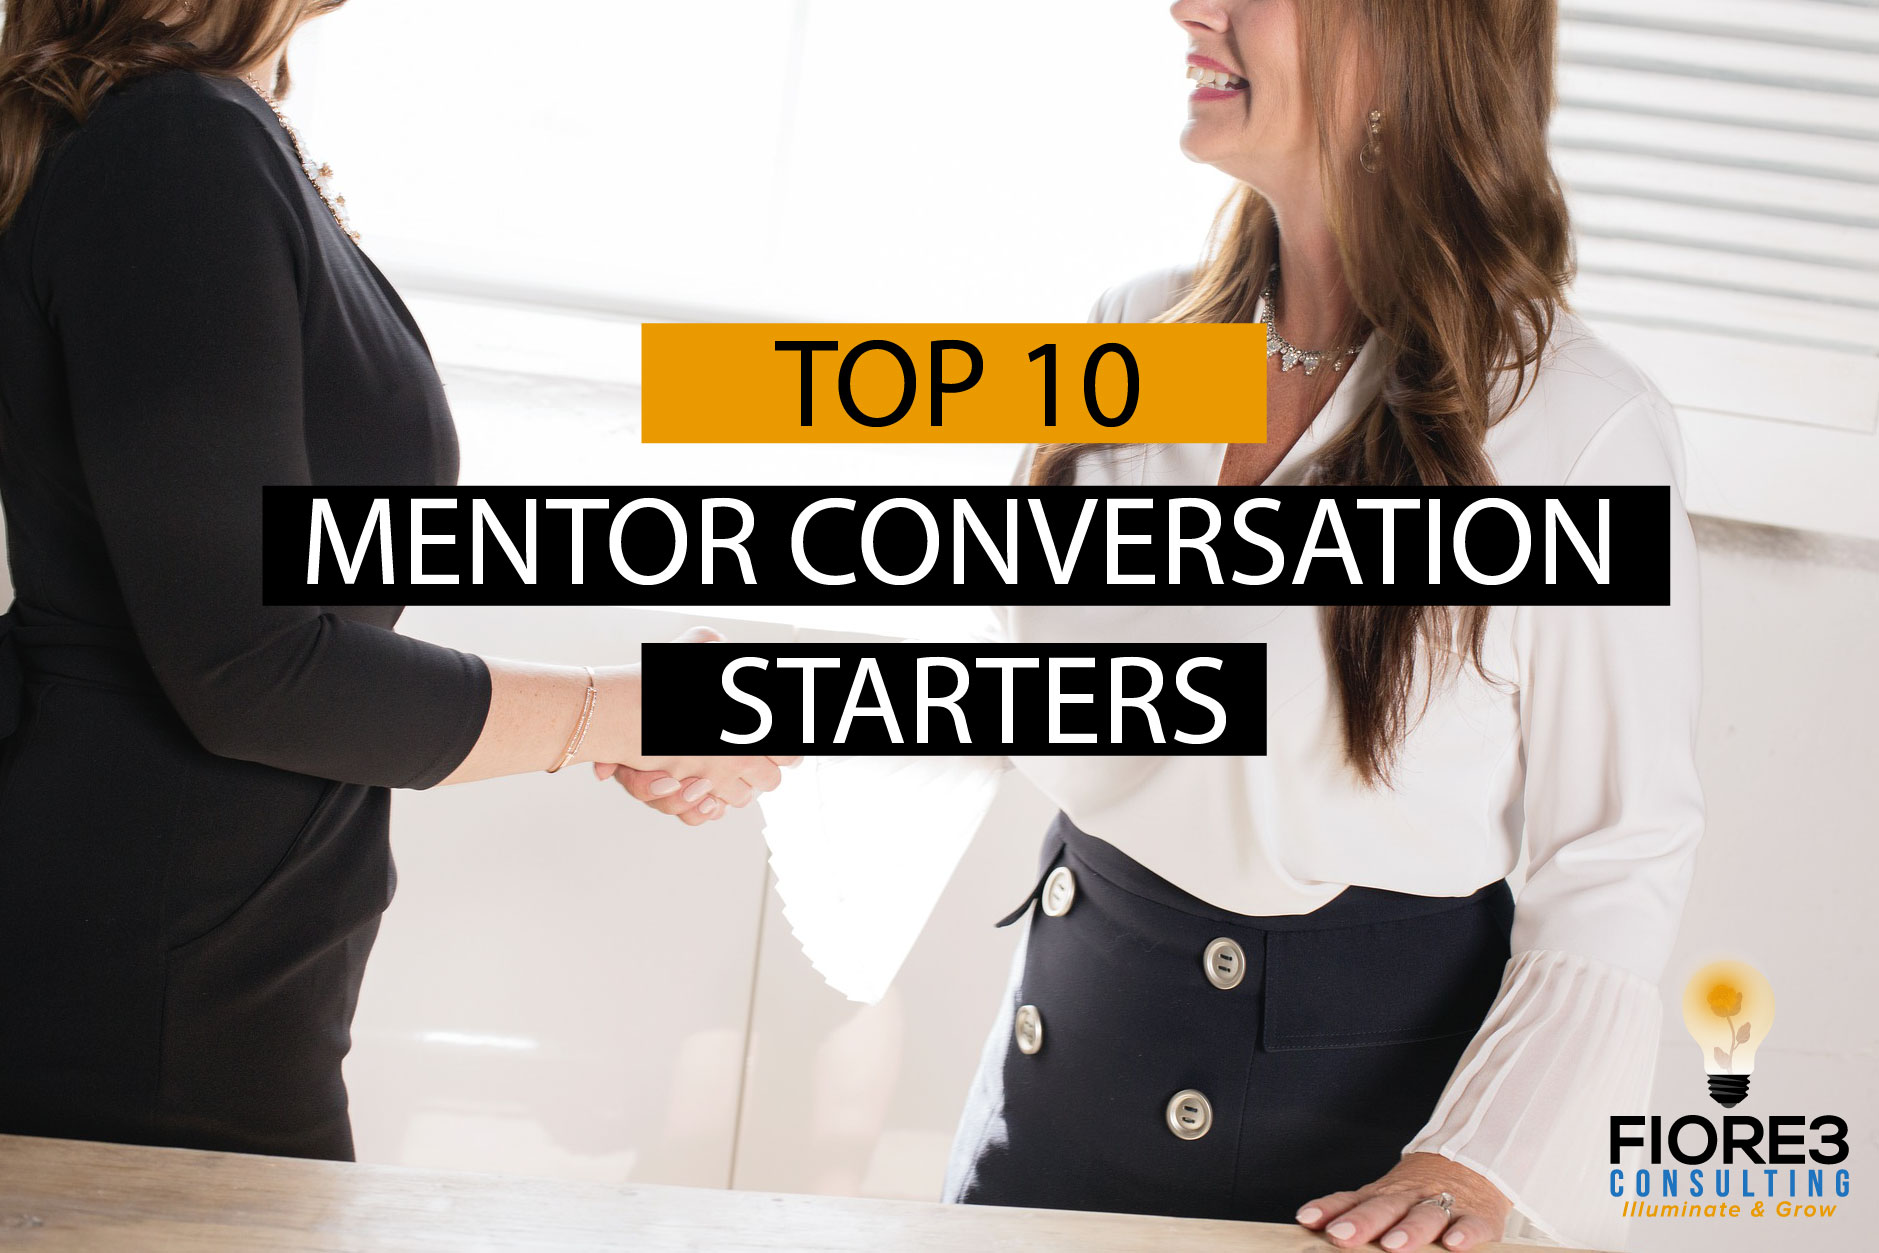 Top 10 Mentor Conversation Starters